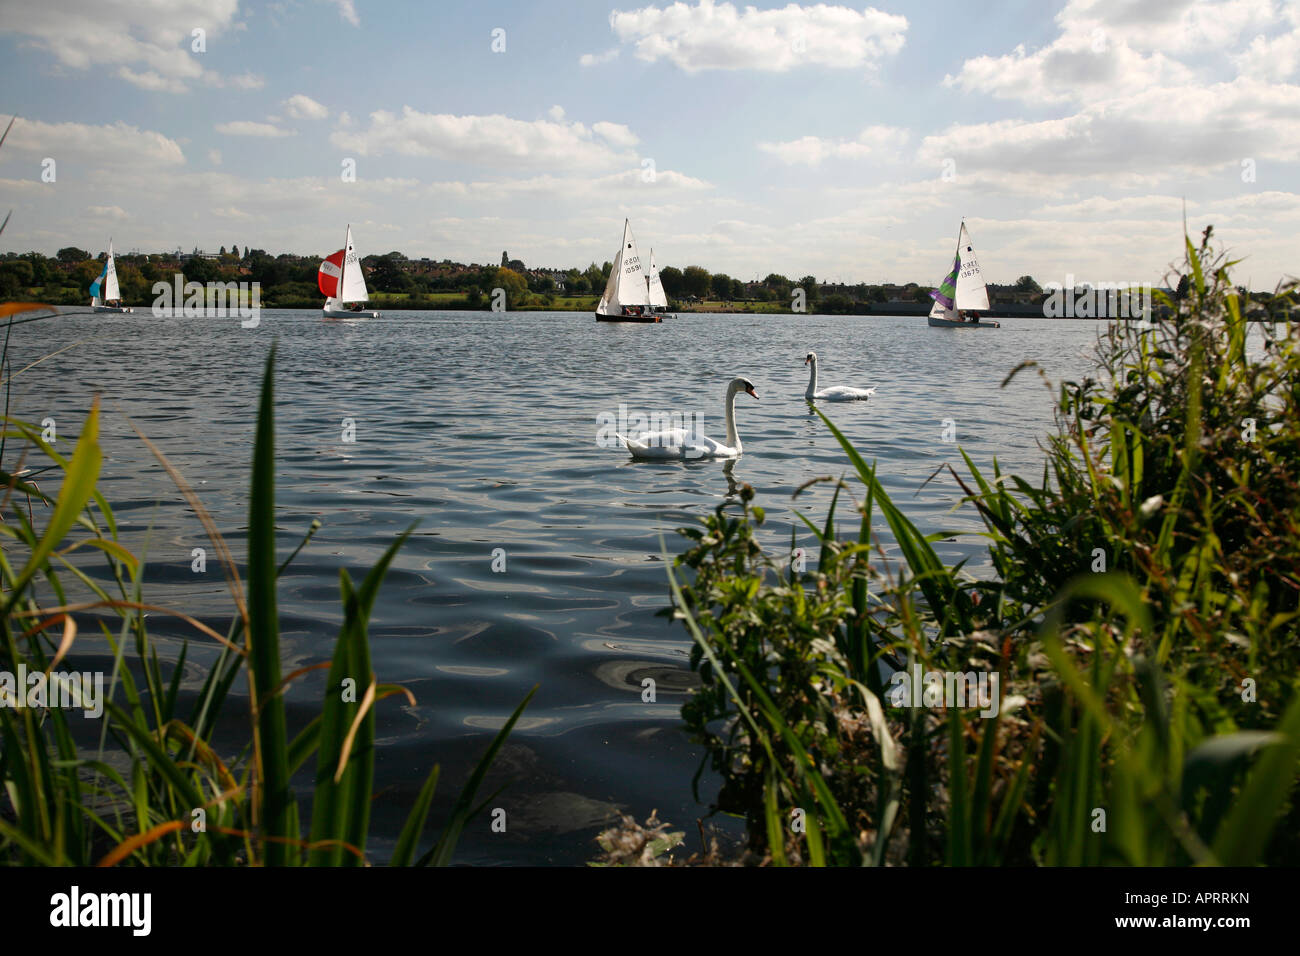 Swans and yachts on Welsh Harp at Neasden, London - Stock Image